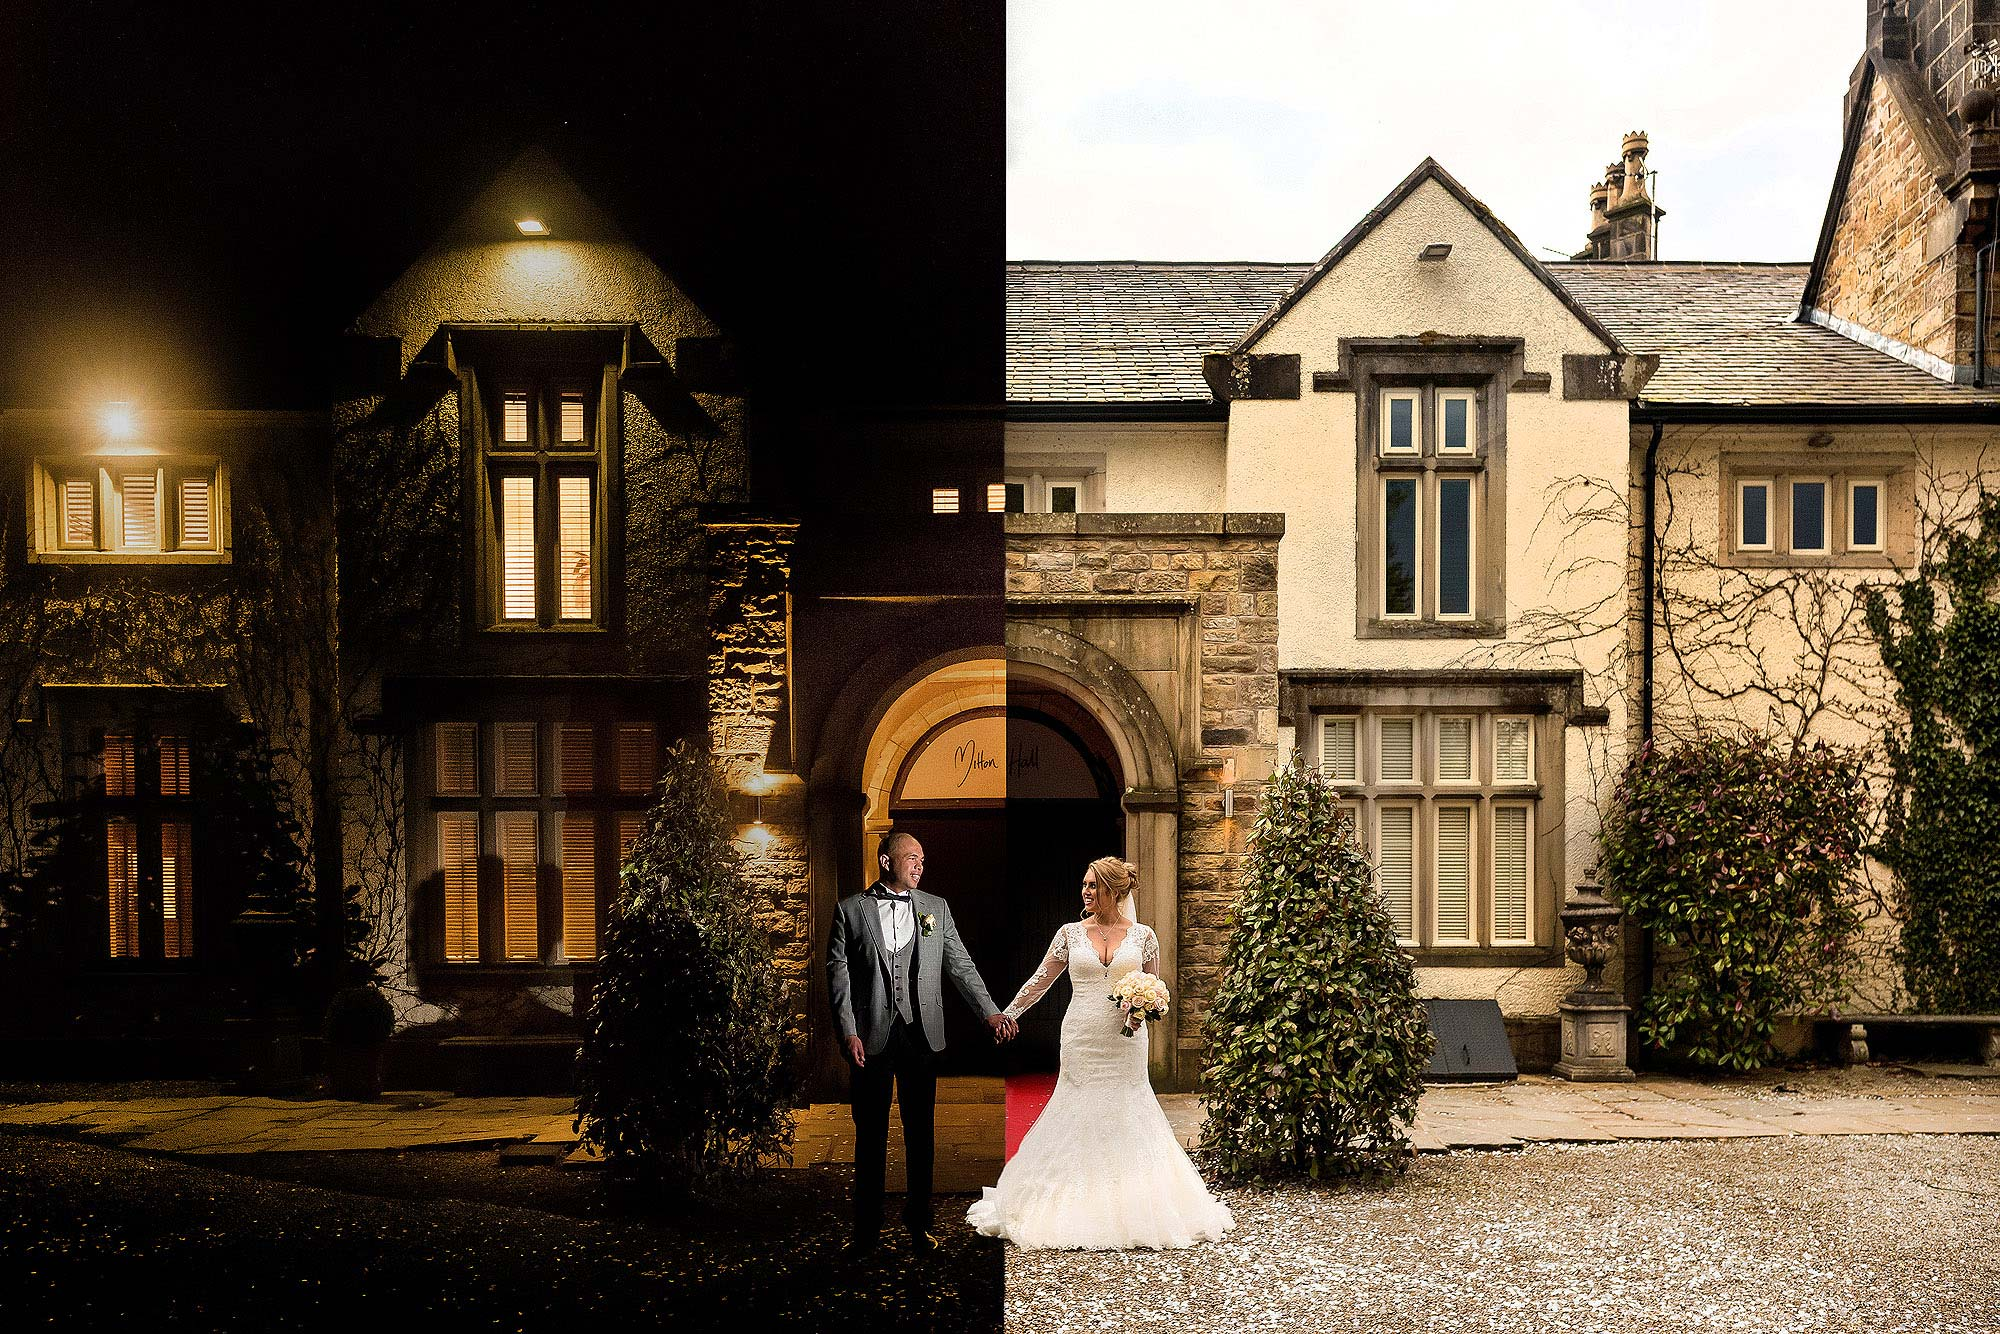 creative day night composite photograph of bride and groom at Mitton Hall